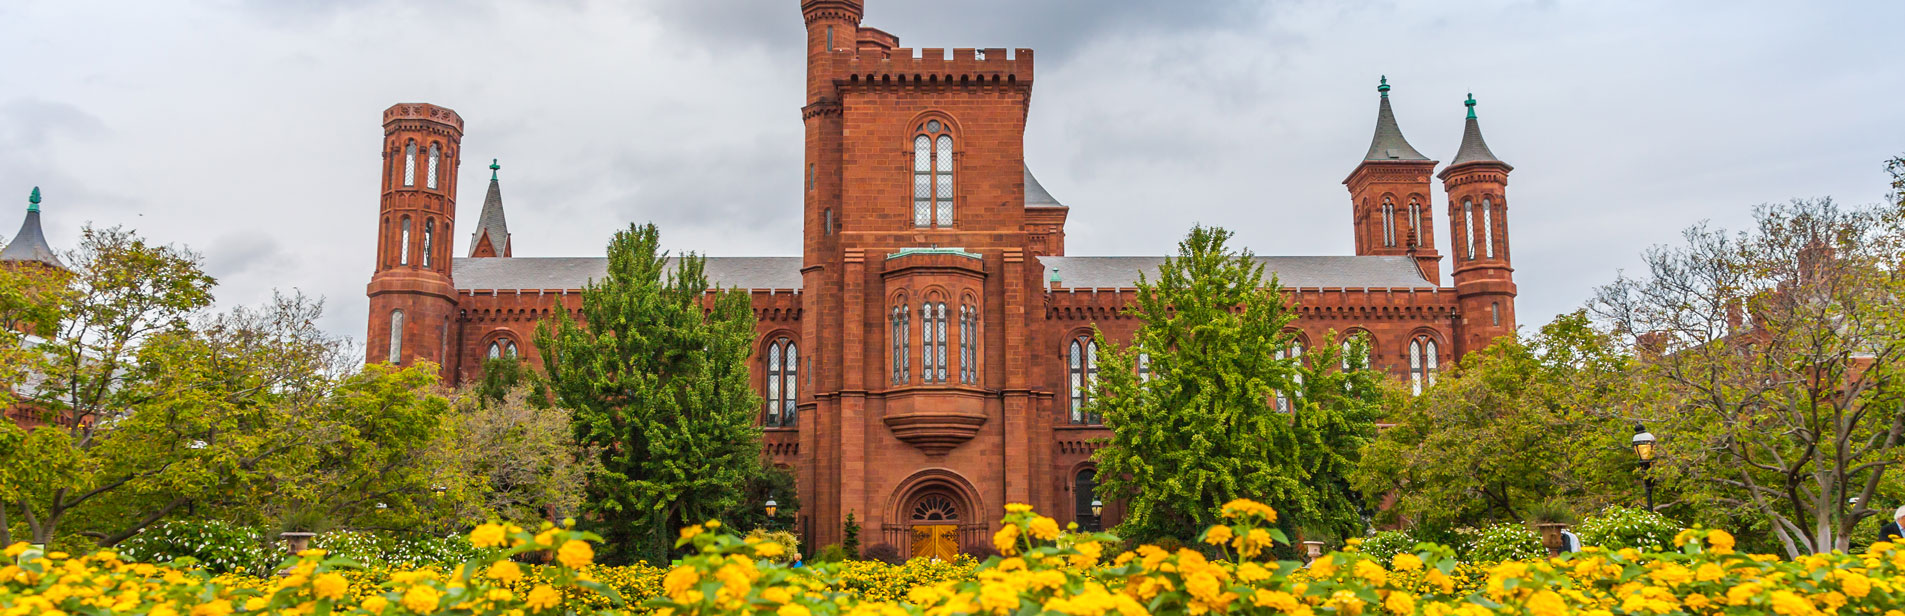 smithsonian museum in washington dc